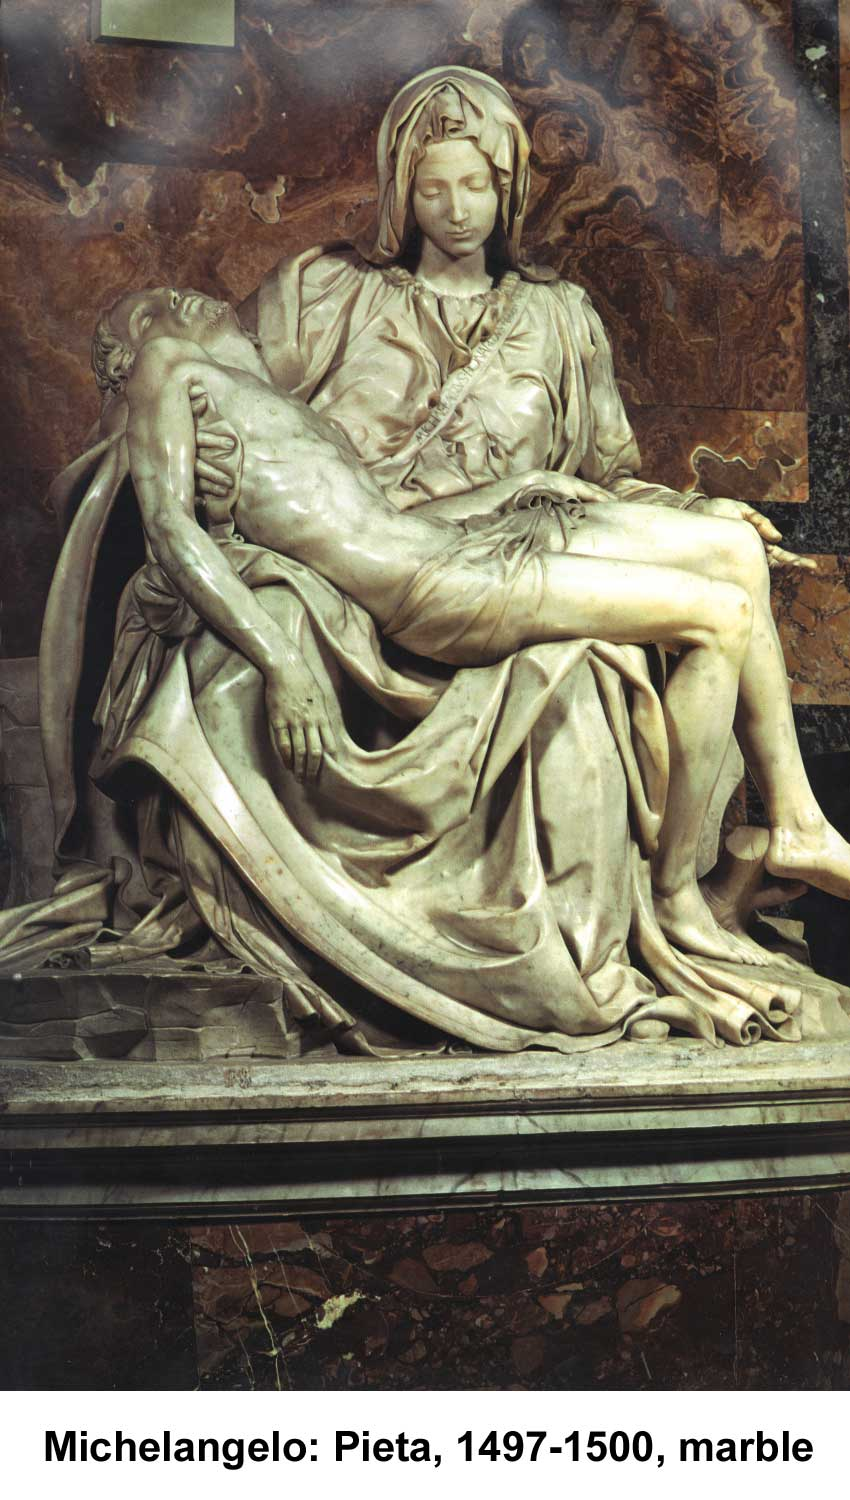 Michelangelo: Pieta (sculpture